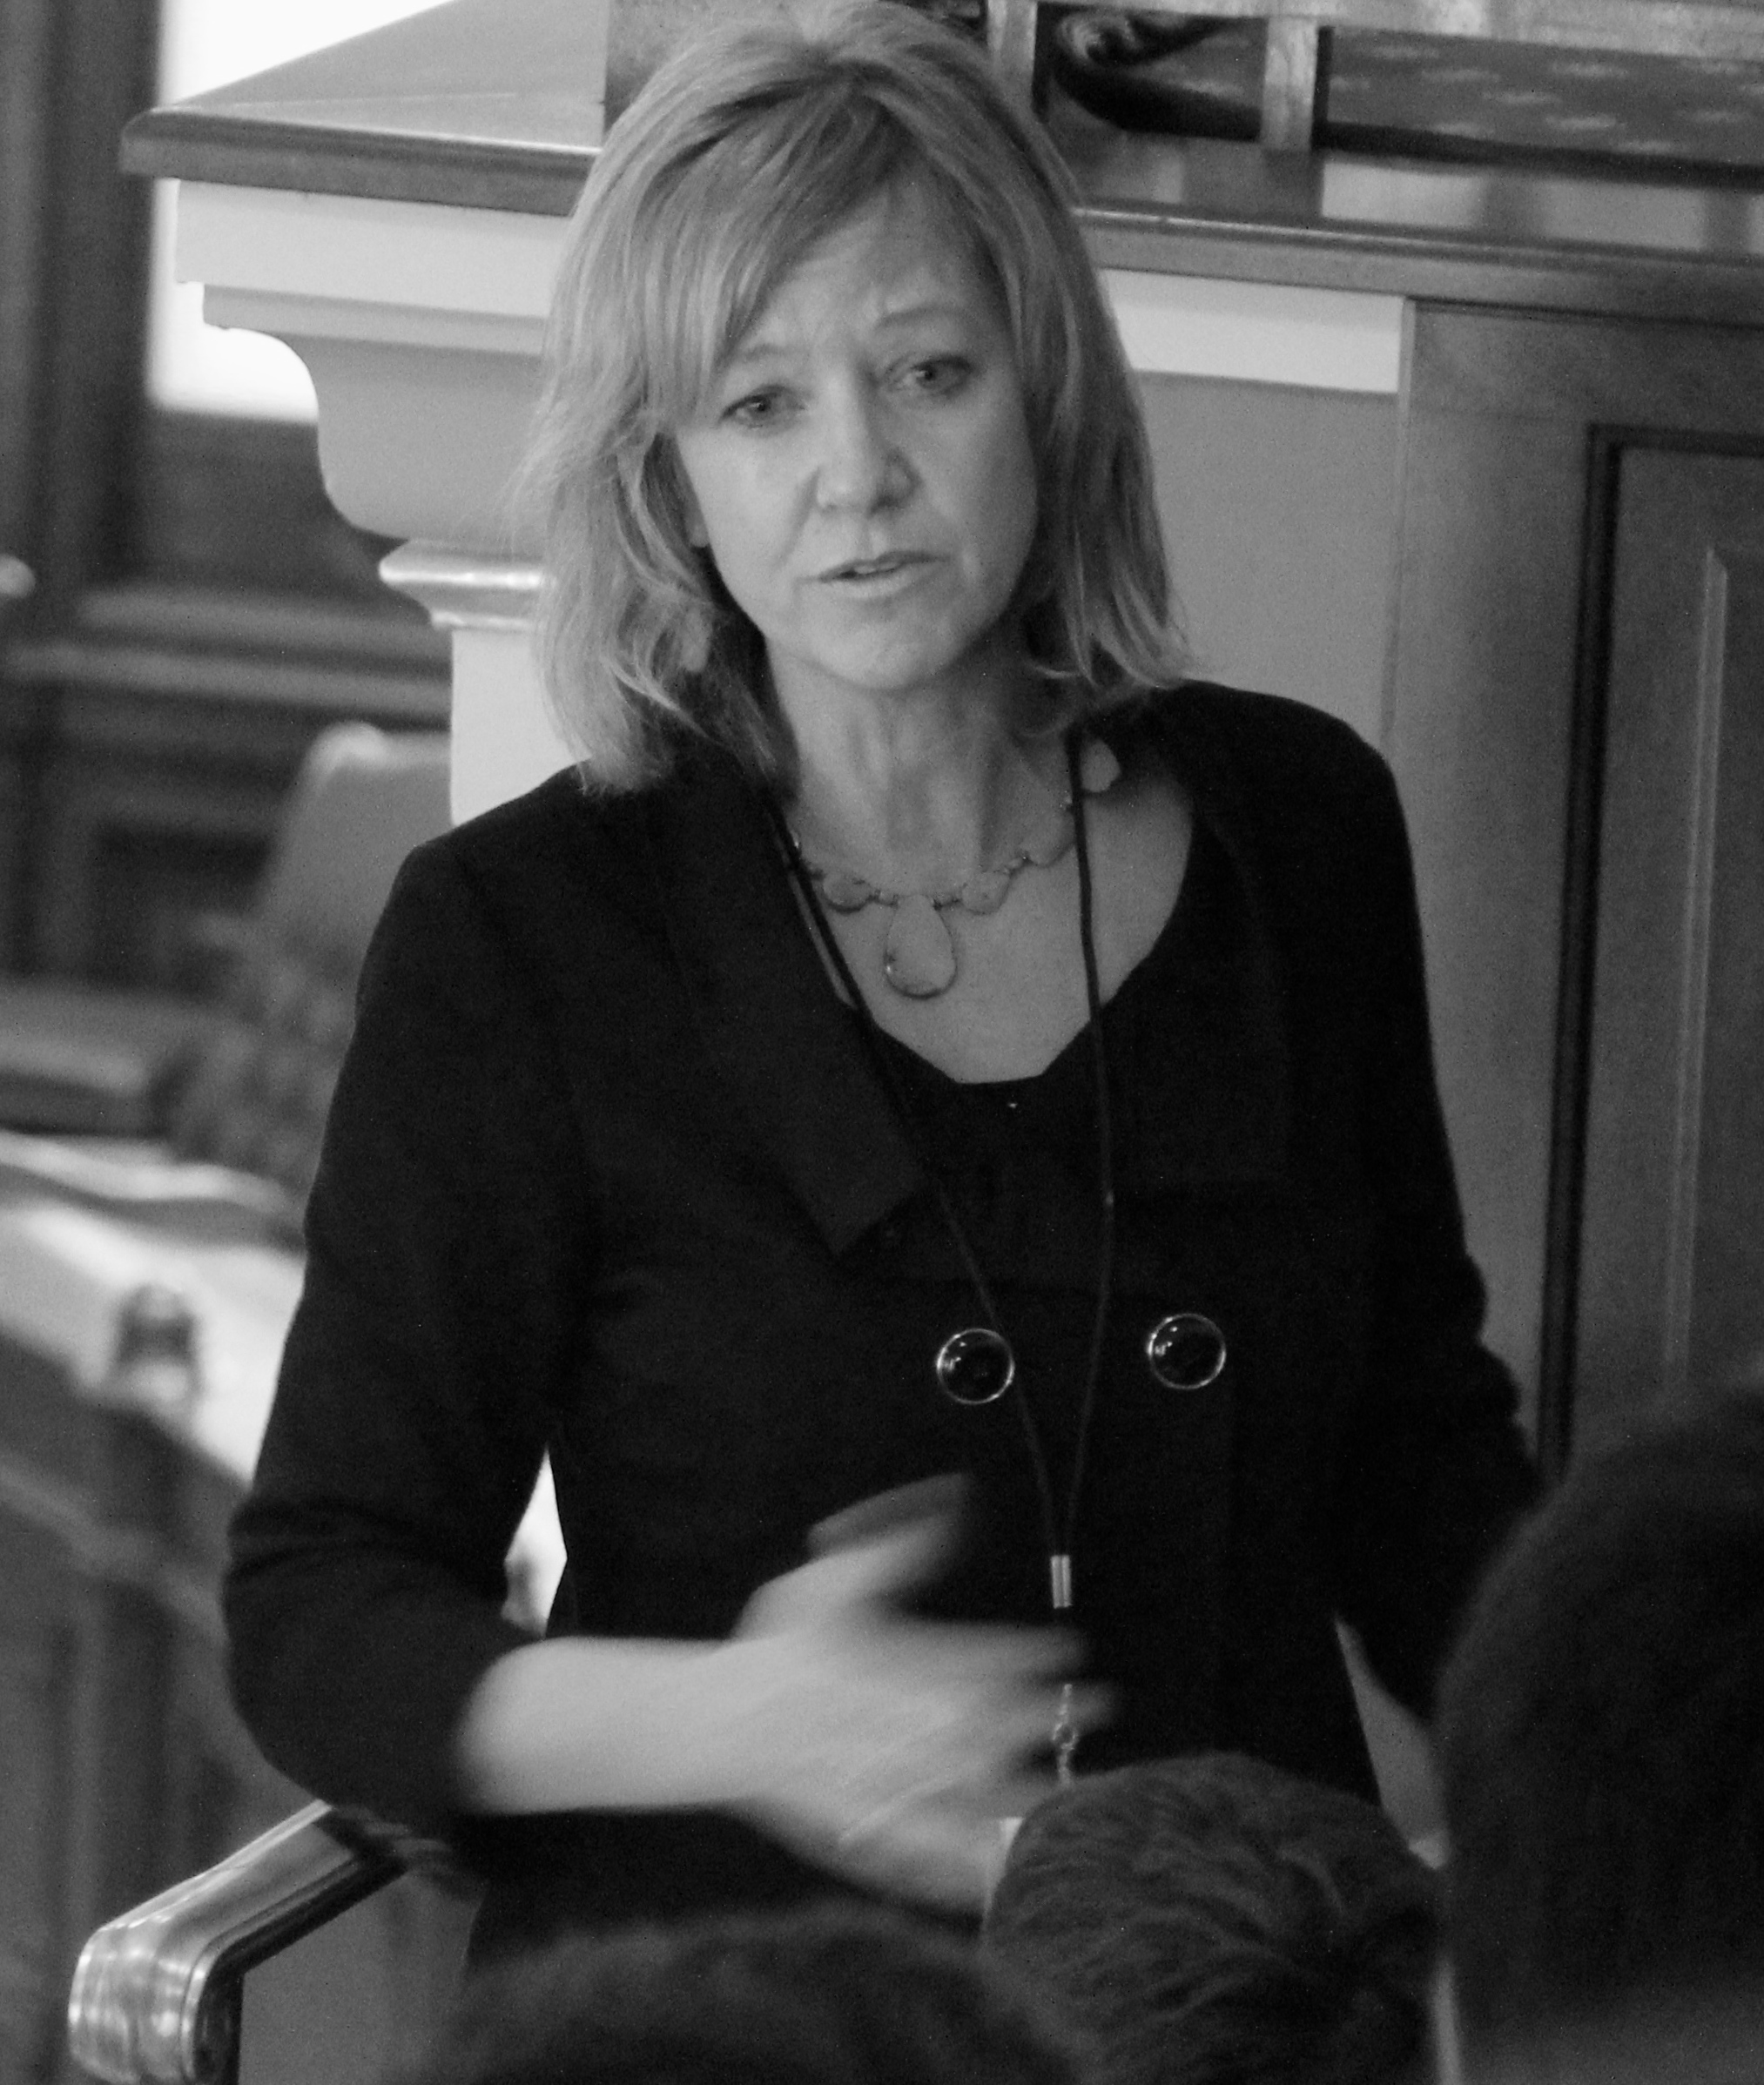 Jeanne ives wikipedia illinois house of representativesedit publicscrutiny Image collections